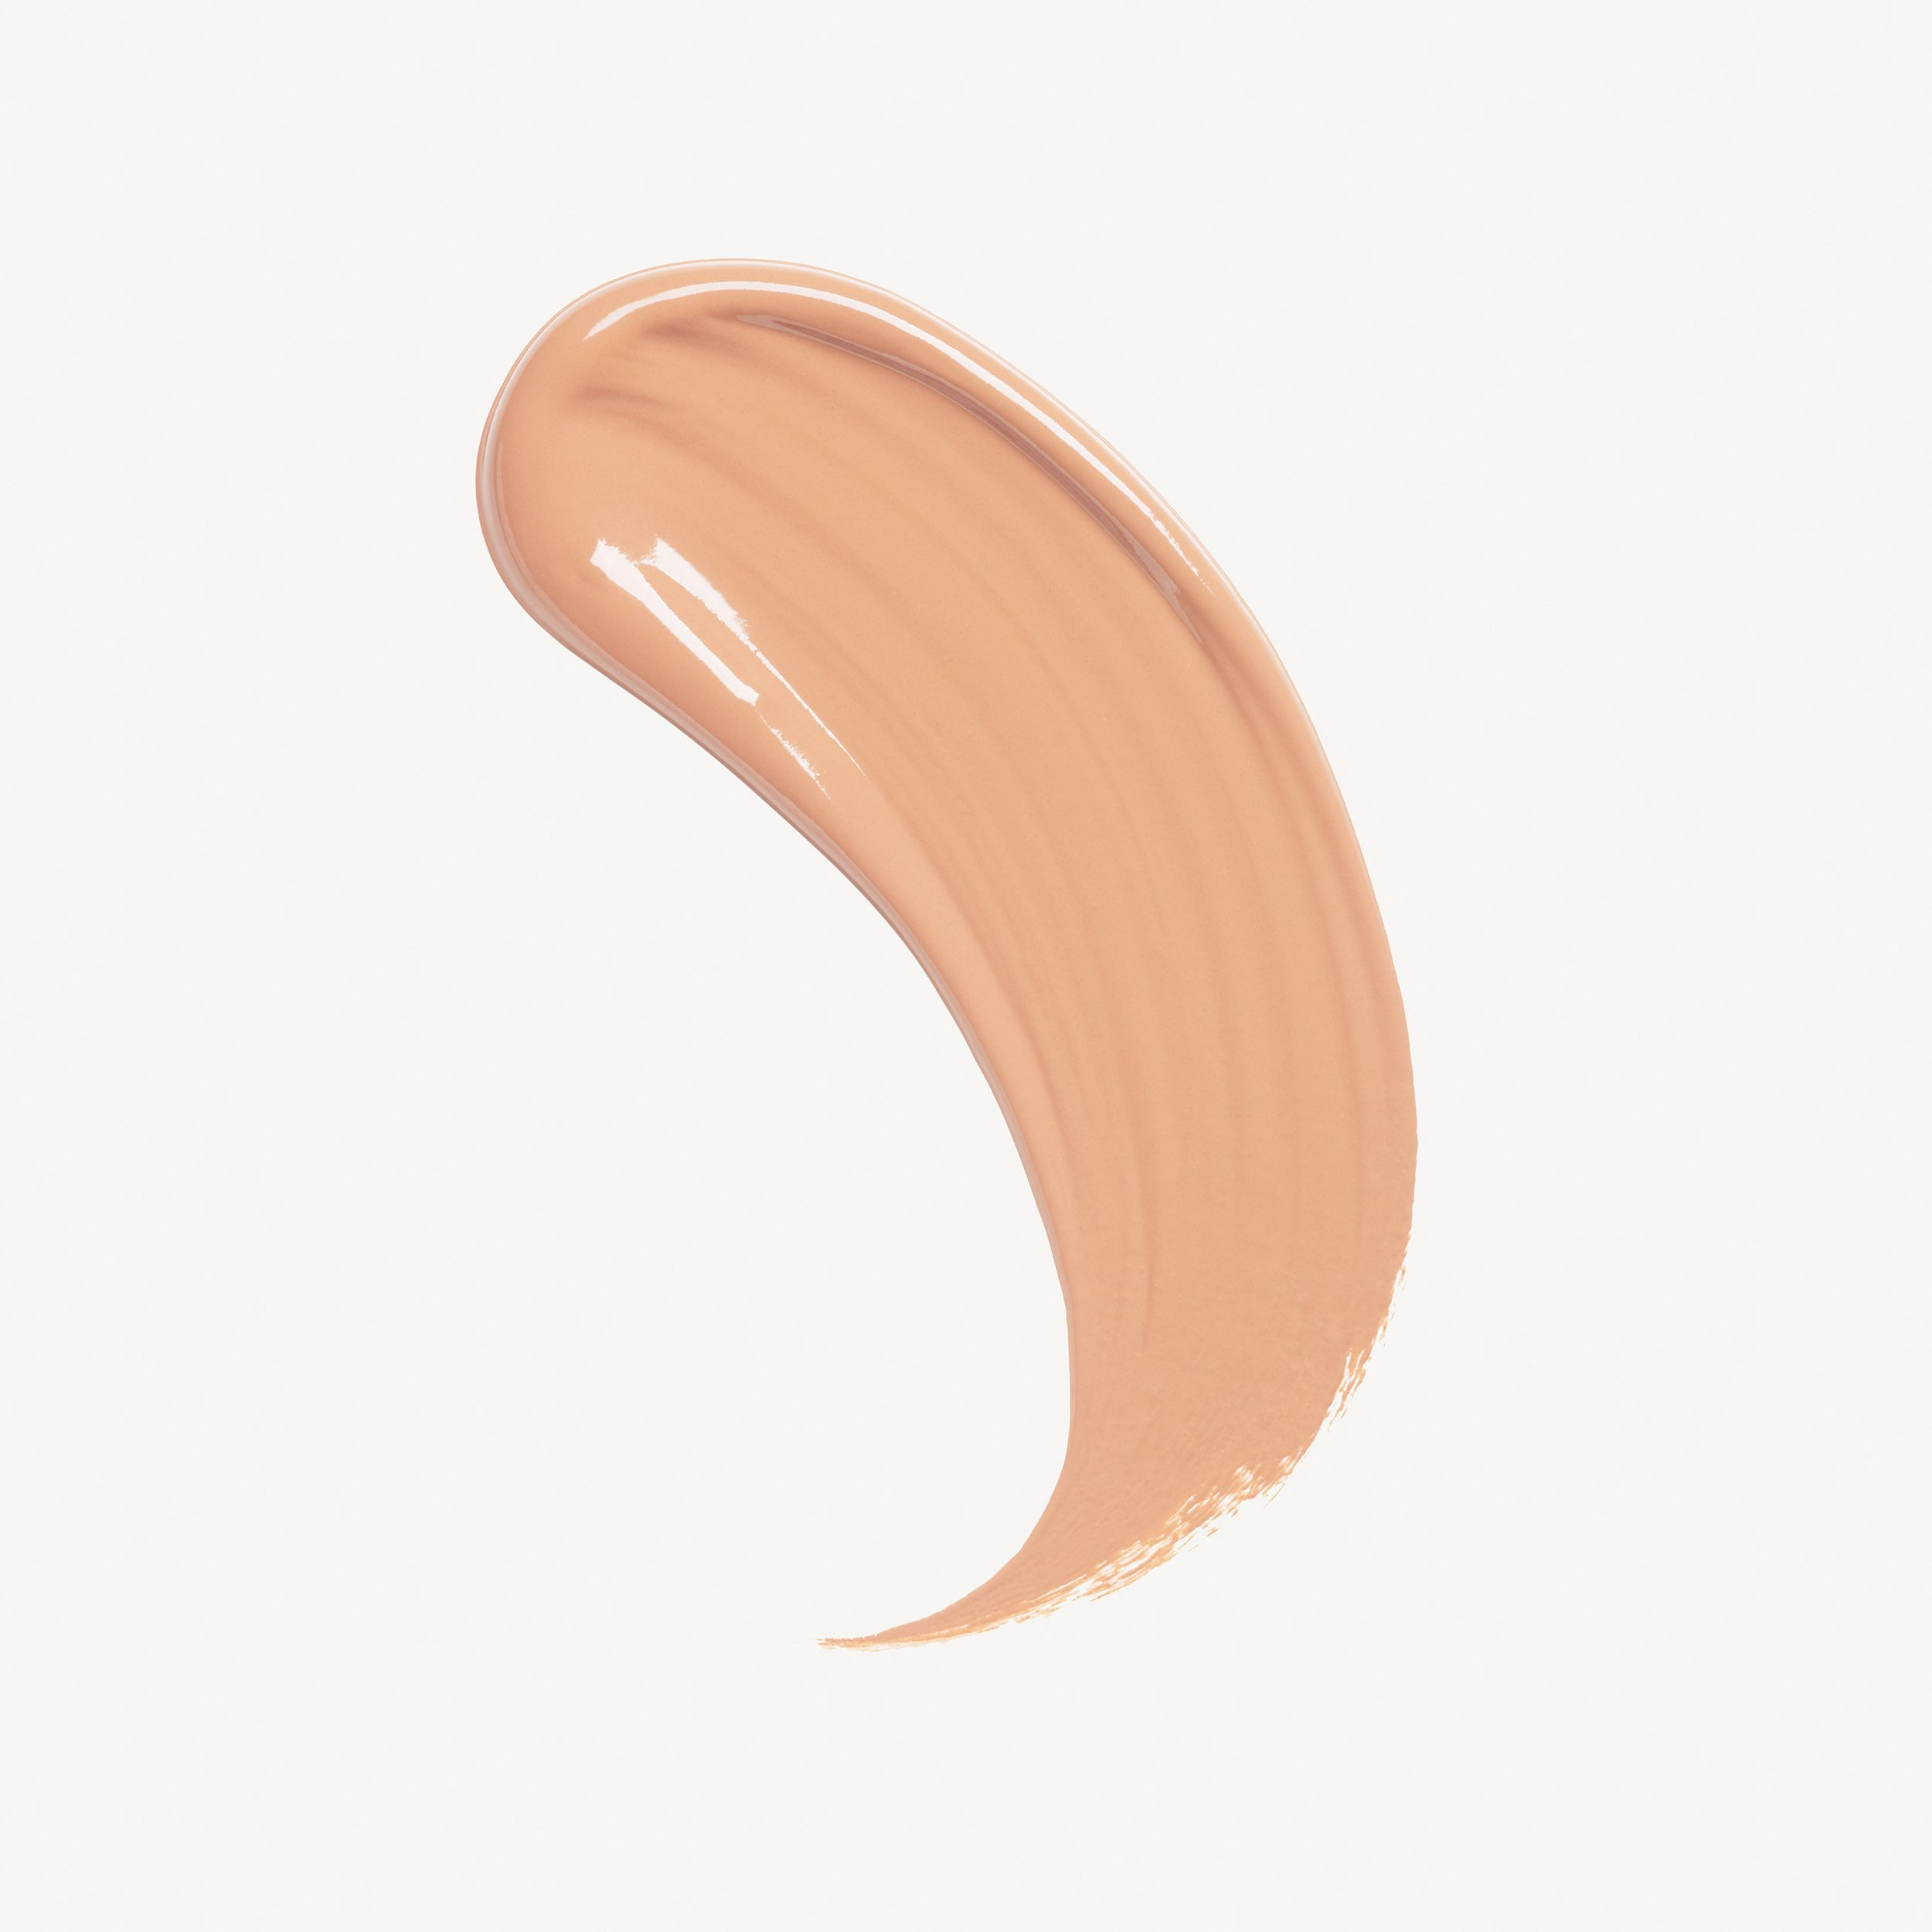 Burberry Cashmere Concealer – Warm Nude No.06 - Women | Burberry United States - 2